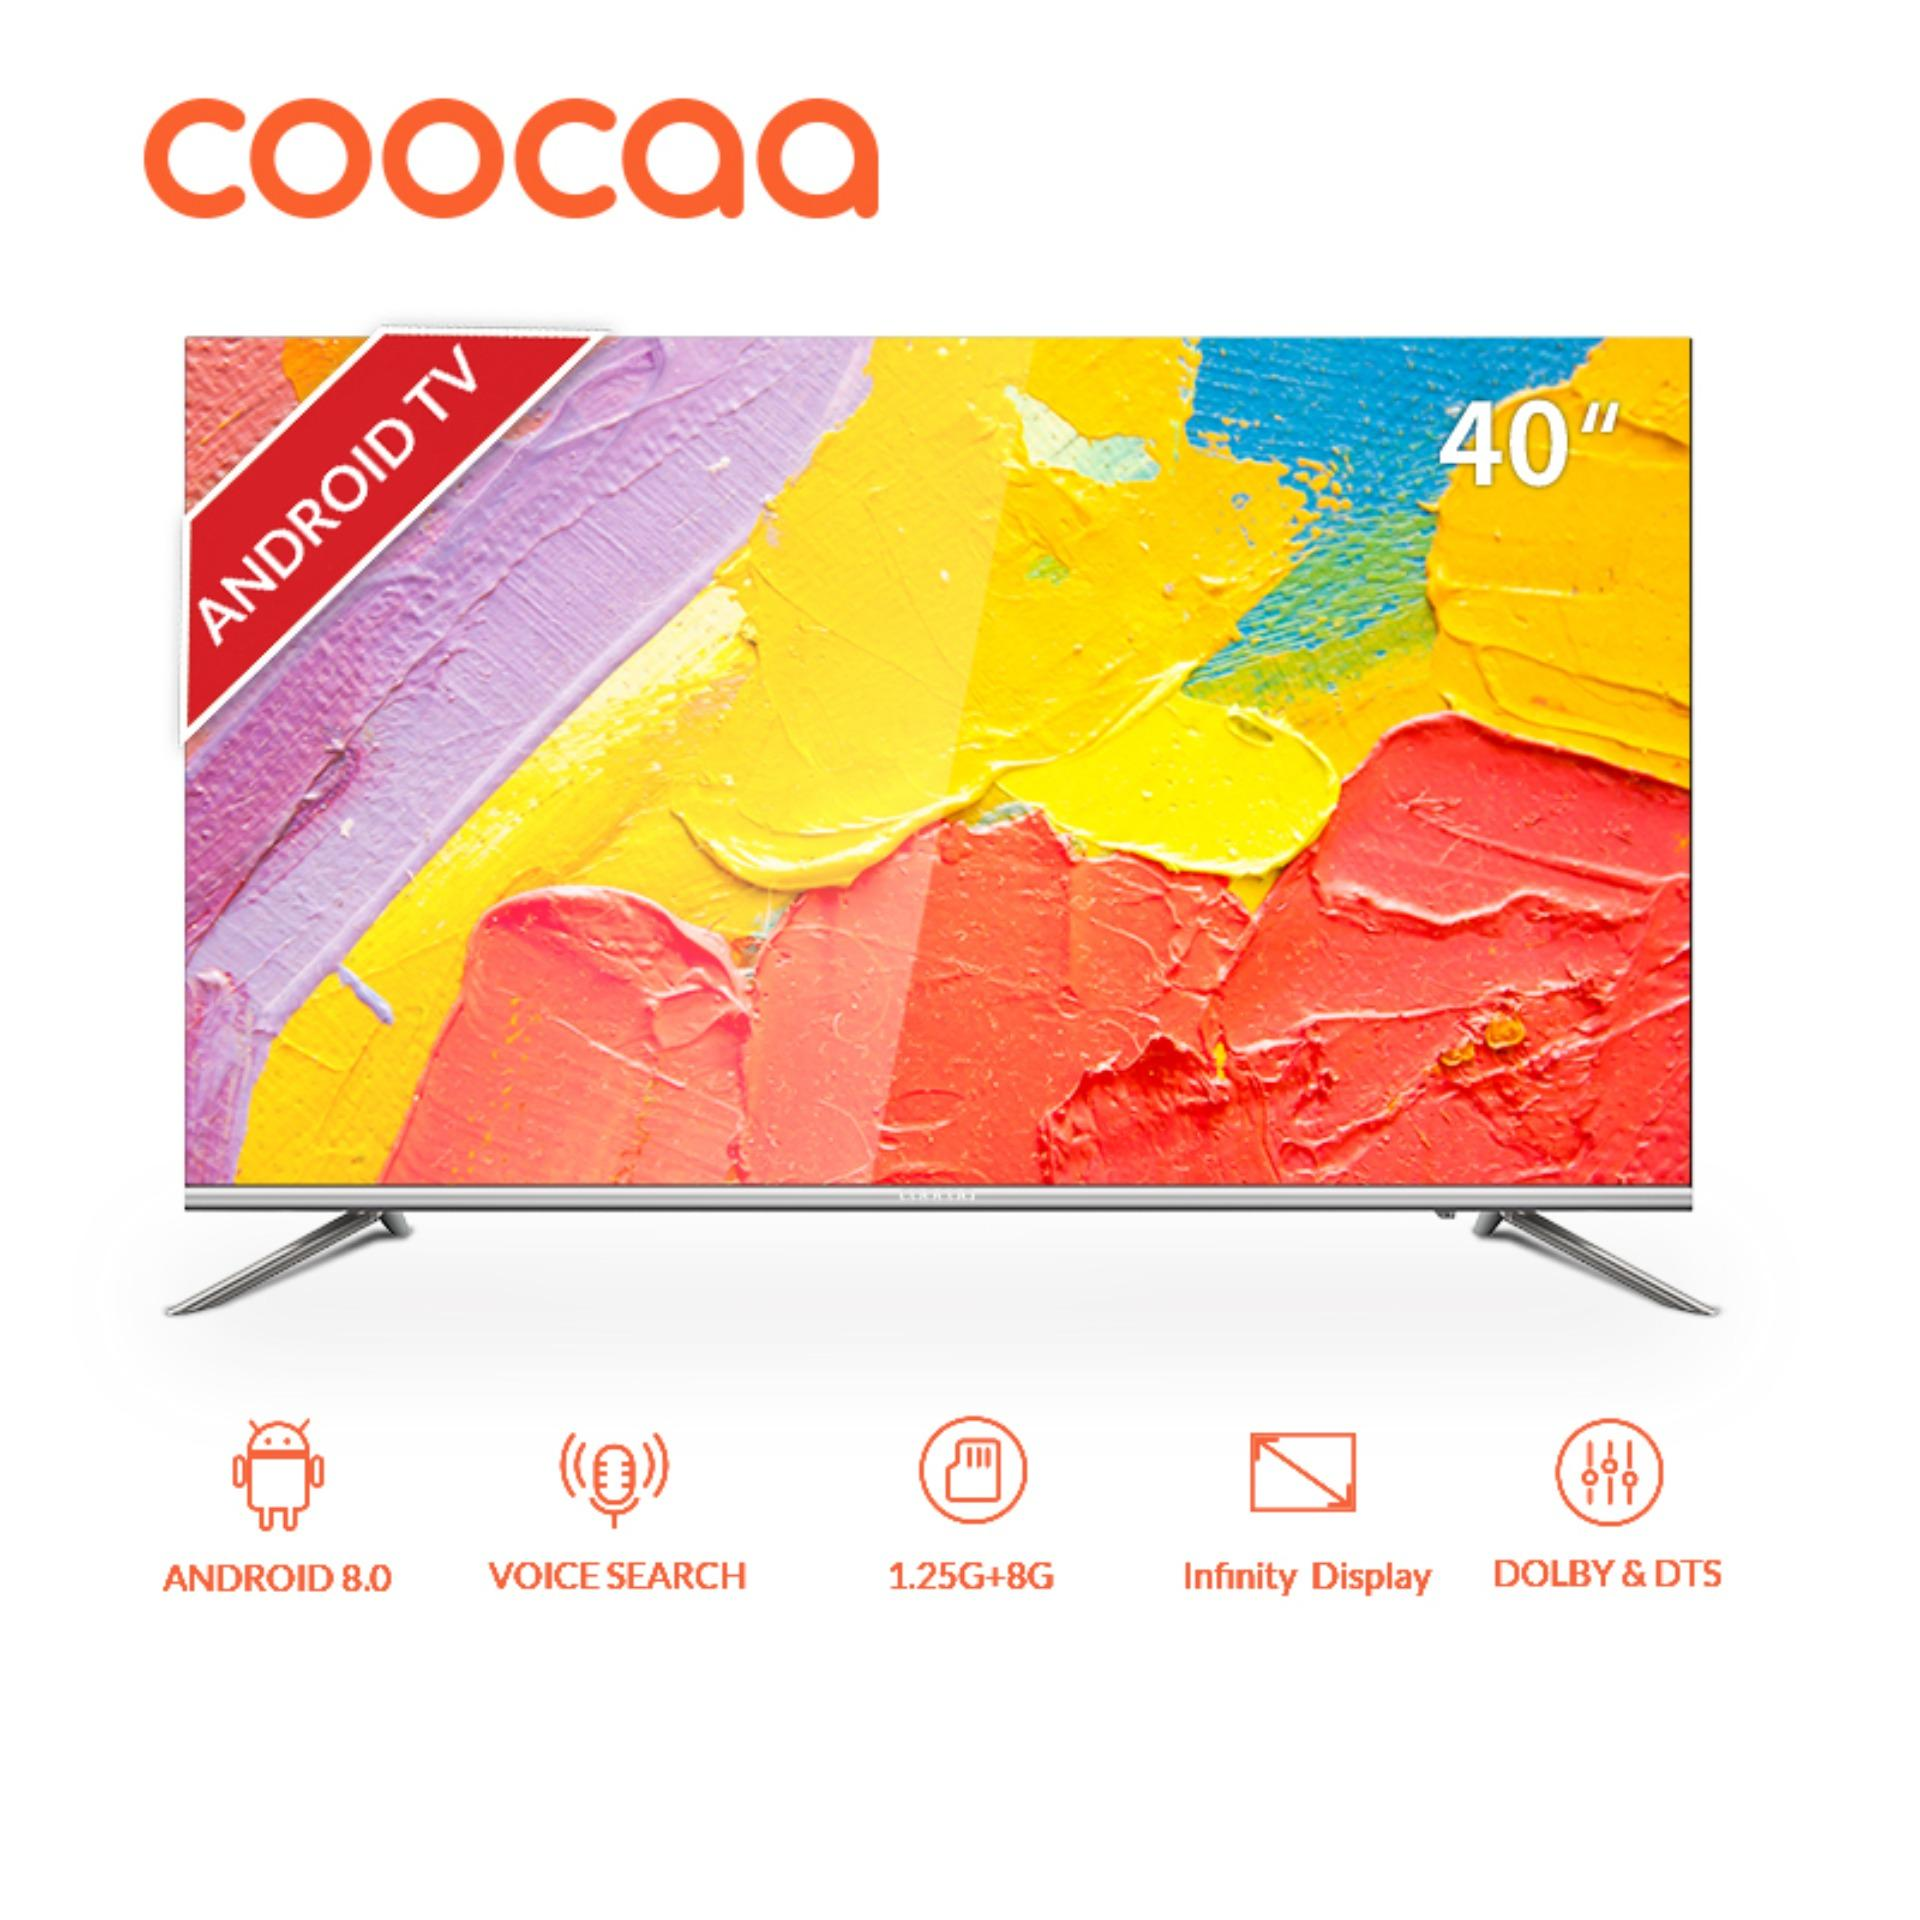 [Pre-Order, Mulai Dikirim 16 Nov 2019] COOCAA LED TV 40 inch Android Smart TV - Wifi - Full HD - Slim - Infinity View (Model : 40S5G) [GRATIS ONGKIR]